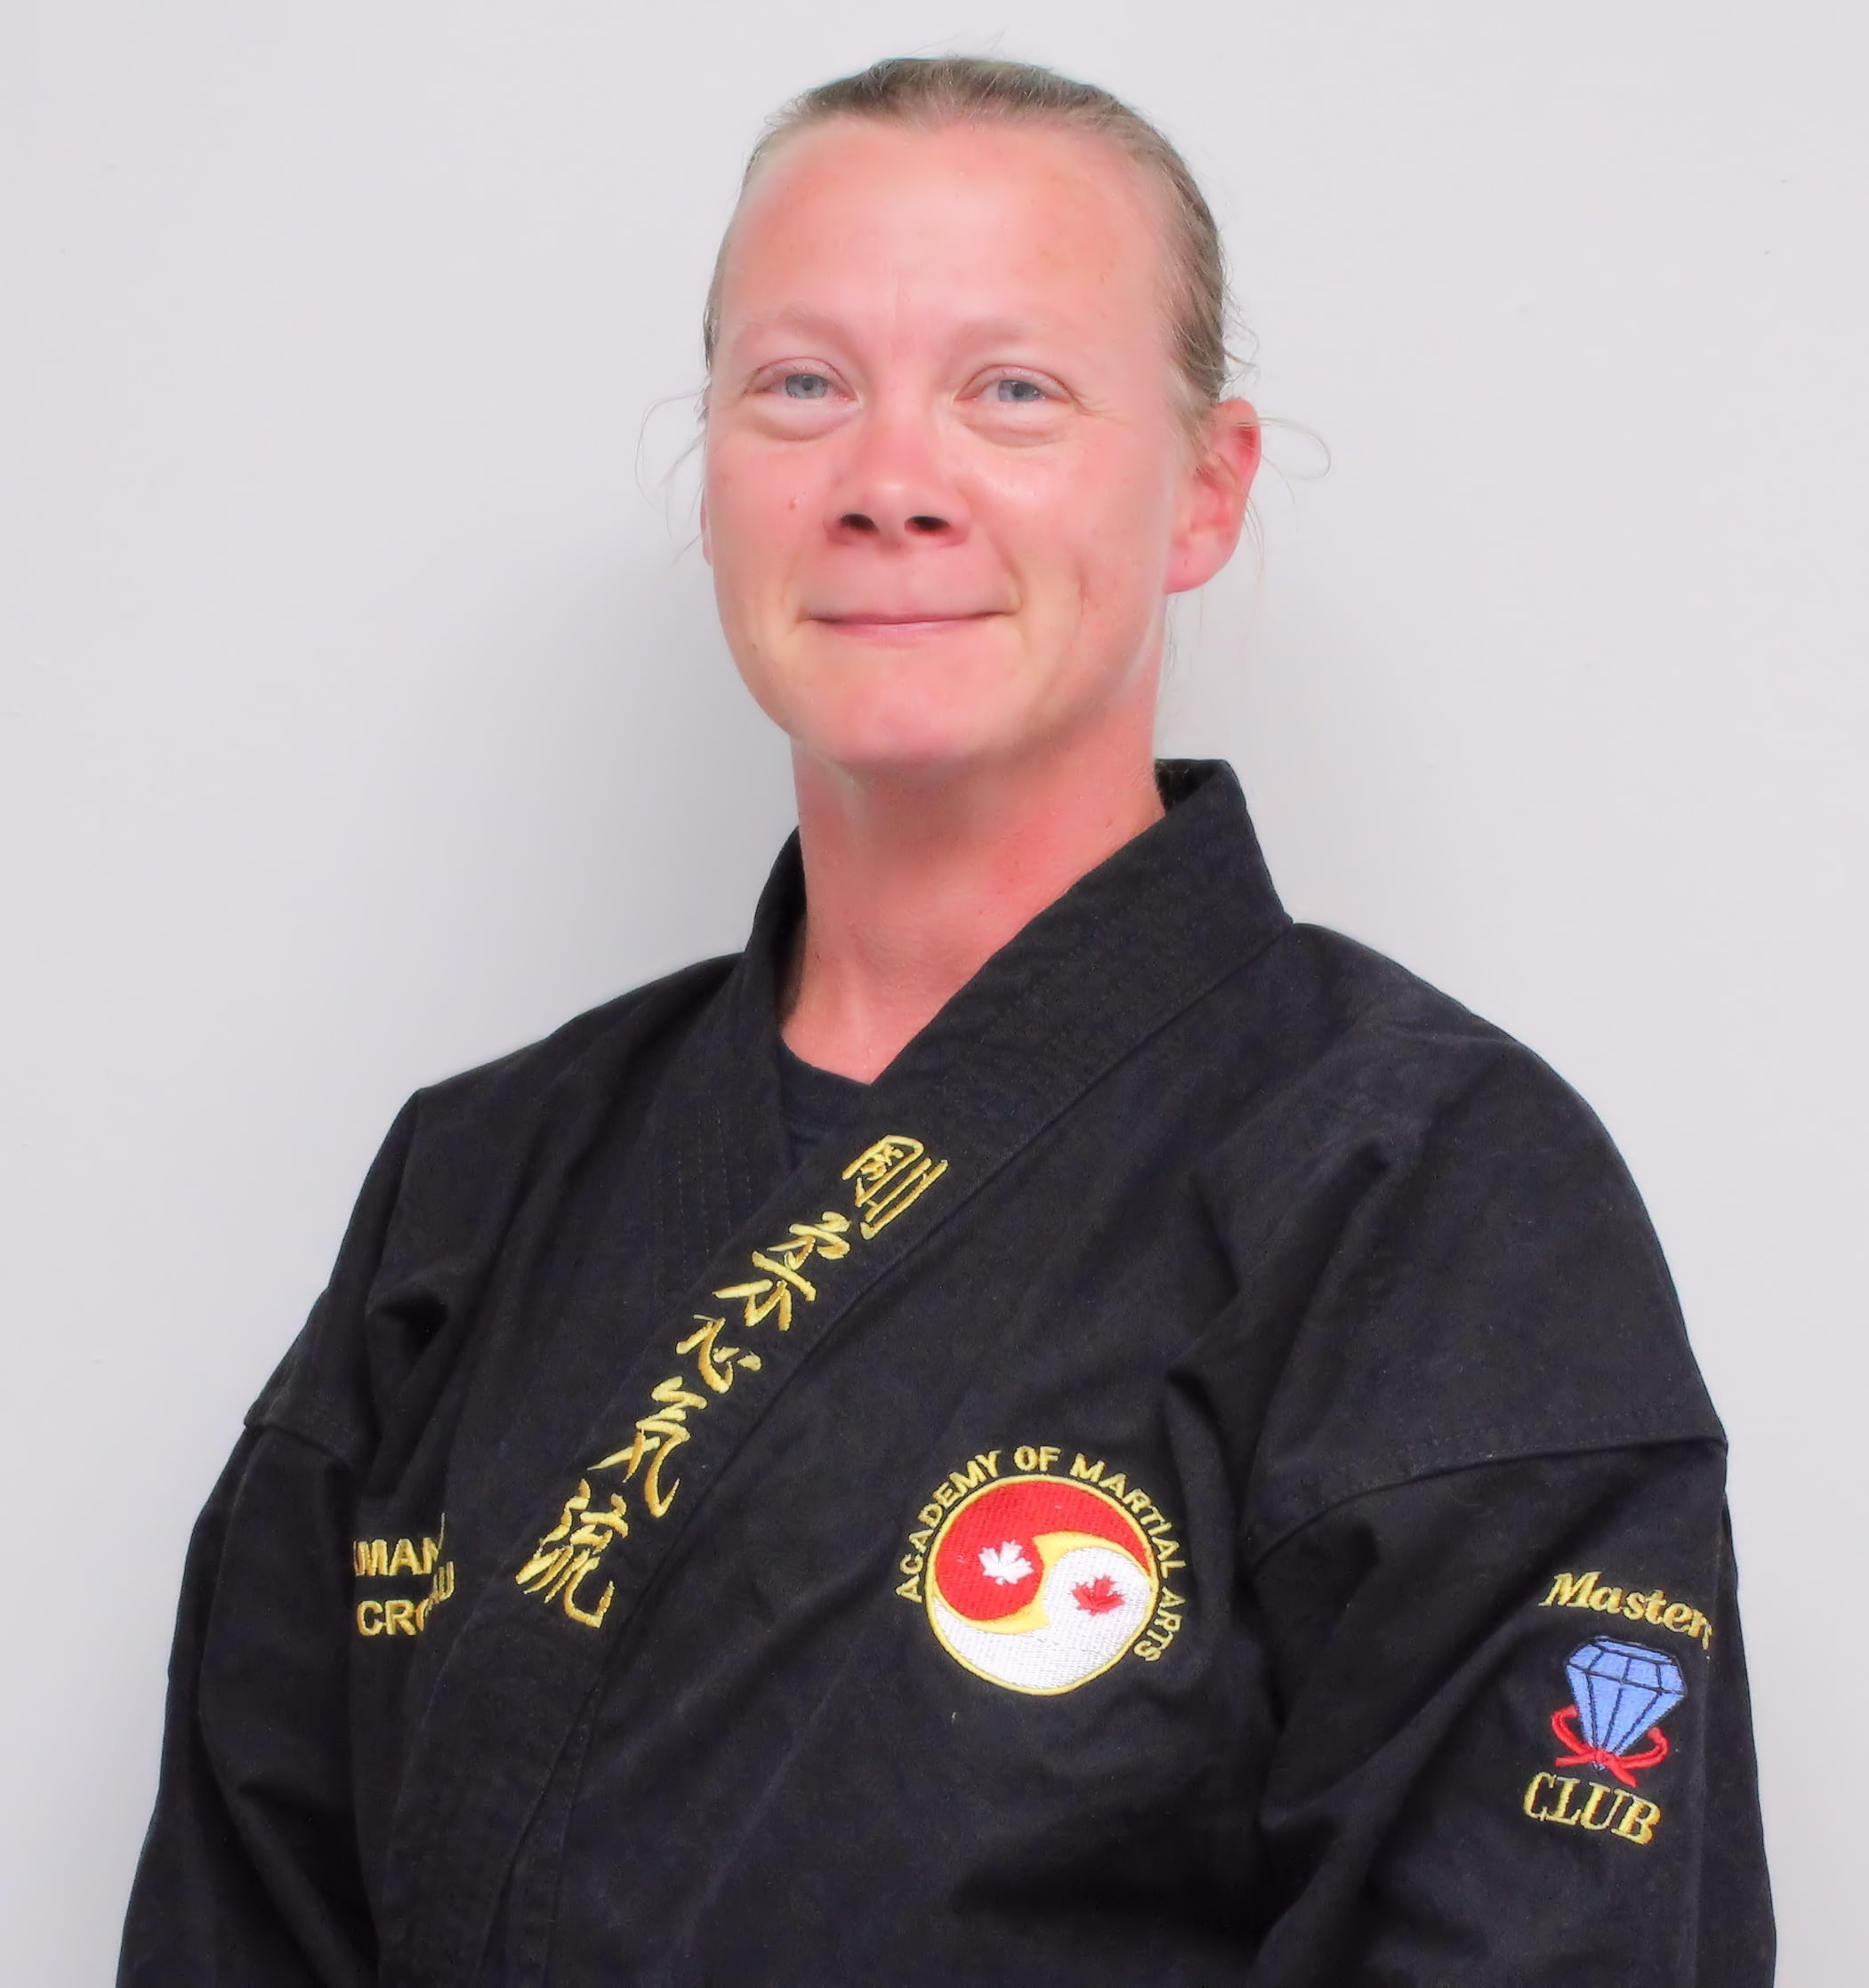 Samantha Croteau in Mississauga - Academy Of Martial Arts